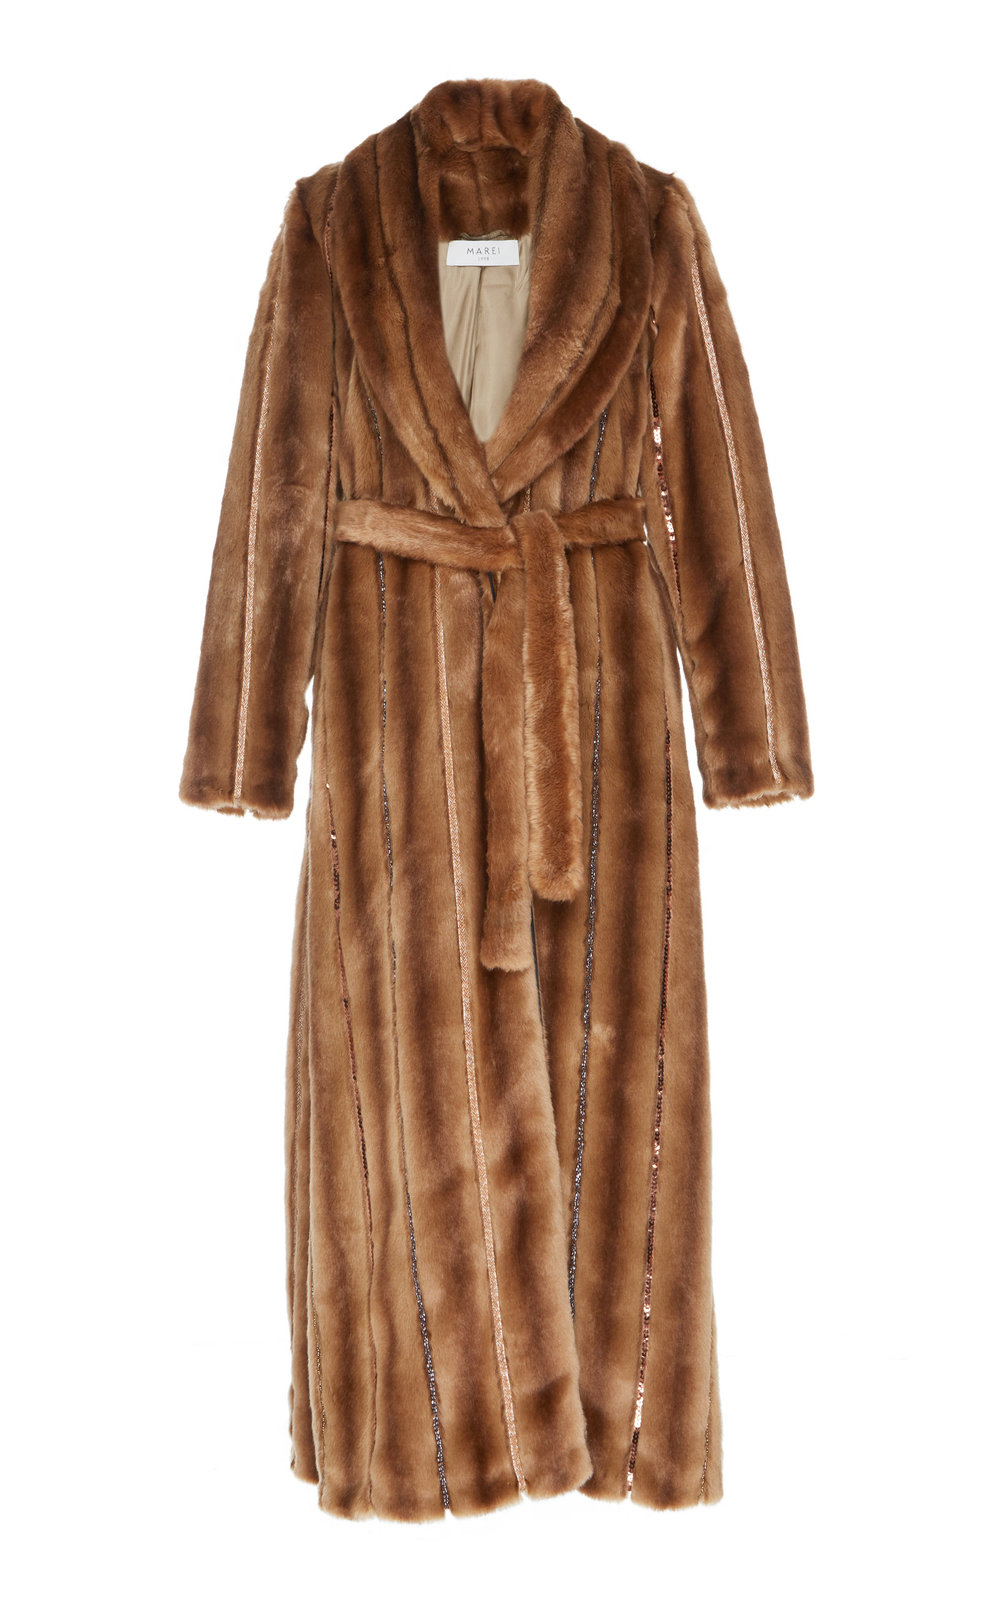 Saponaria Faux Fur Coat - BROWN  A true investment piece, this calf-length coat is a winter essential. Made from soft and fluffy faux fur, embellished with bead trims, it features a wrap silhouette and a notched lapel neckline. The loose fit makes it easy to layer.